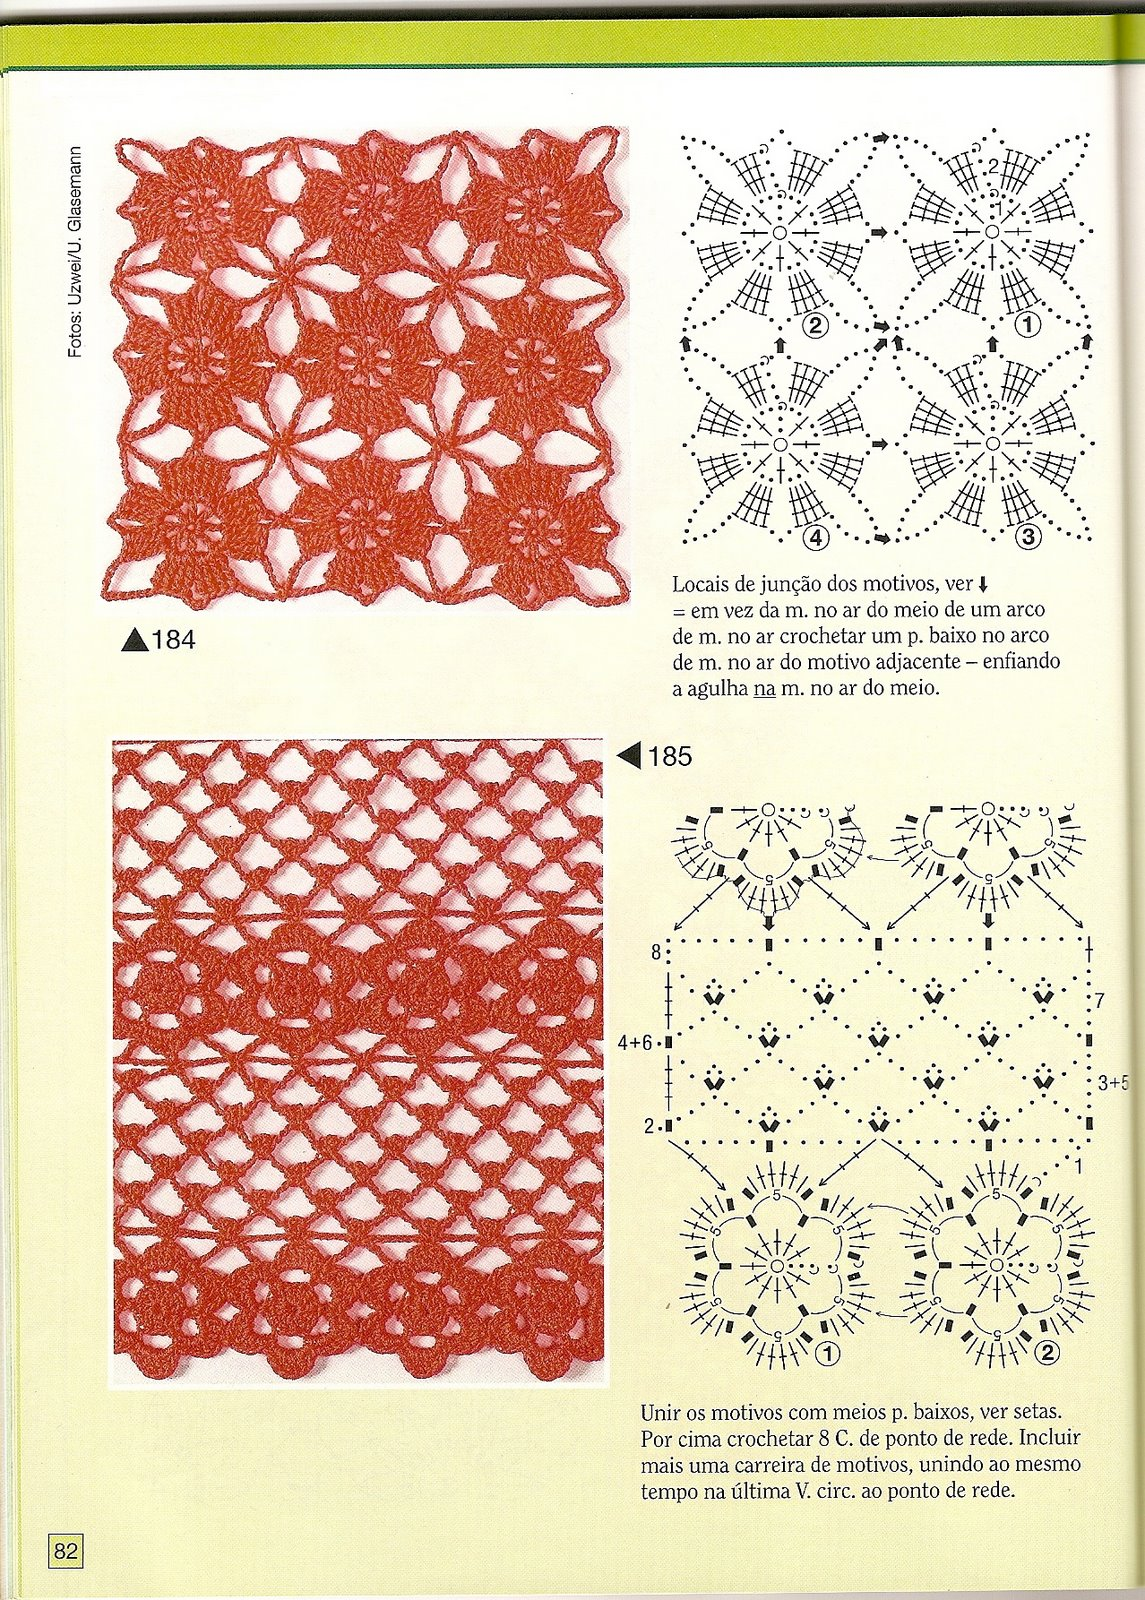 Crochet Stitches On Pinterest : ... Crochet punti on Pinterest Patrones, Hairpin lace patterns and